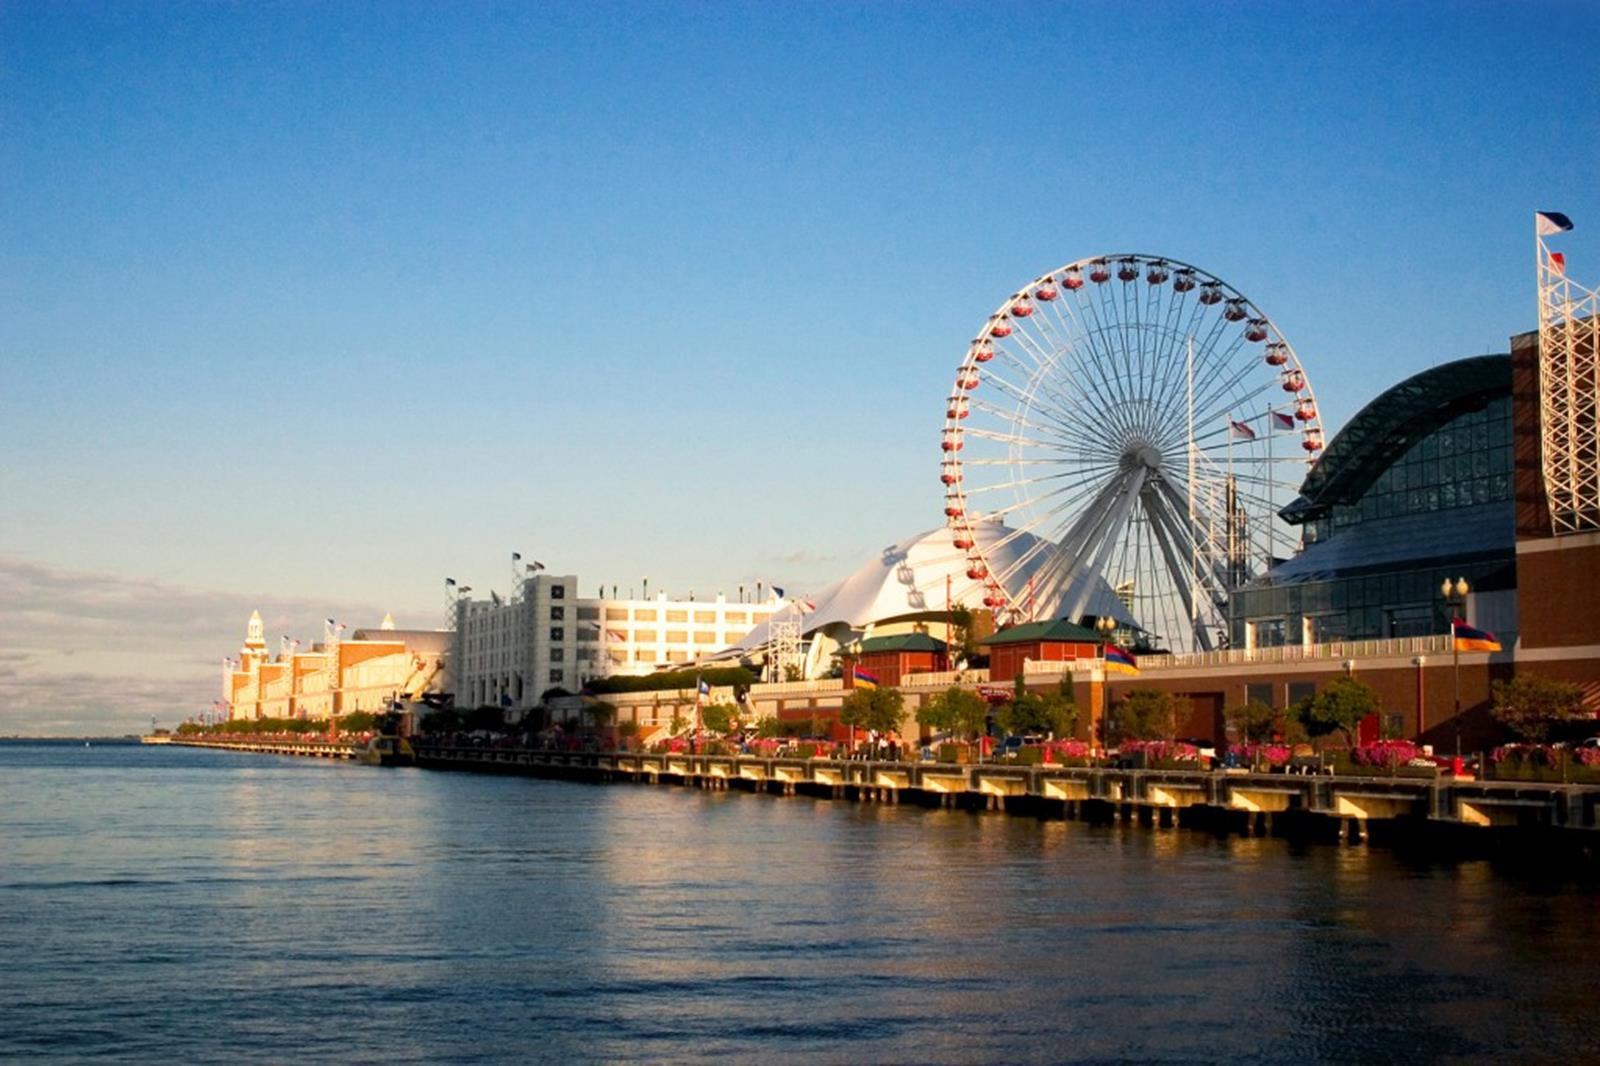 Chicago's Navy Pier from the Shoreline